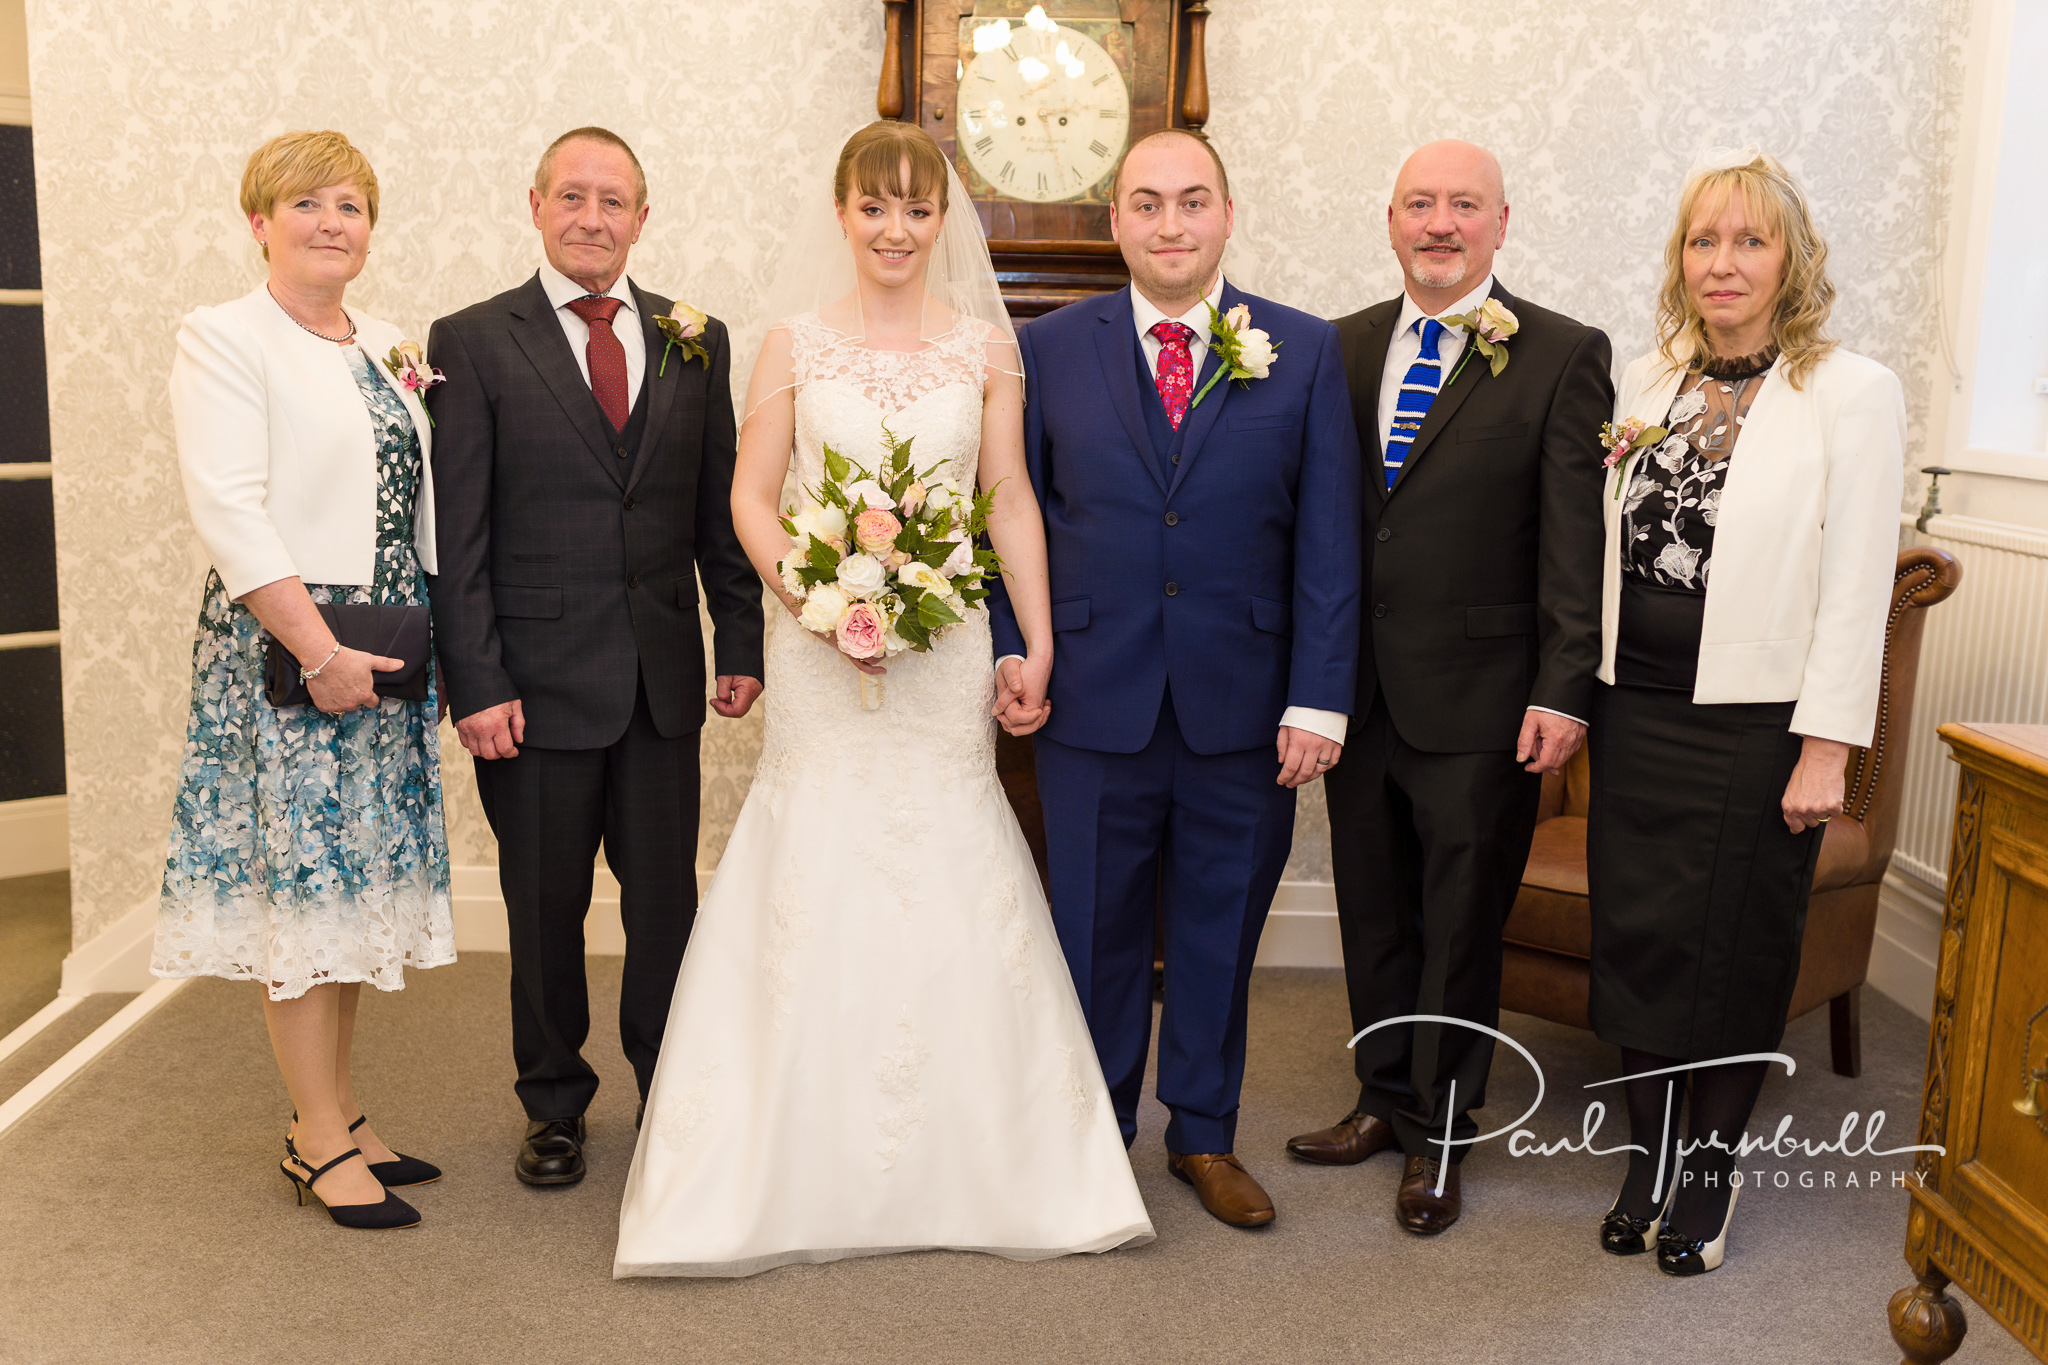 wedding-photographer-pontefract-yorkshire-laura-keanu-045.jpg